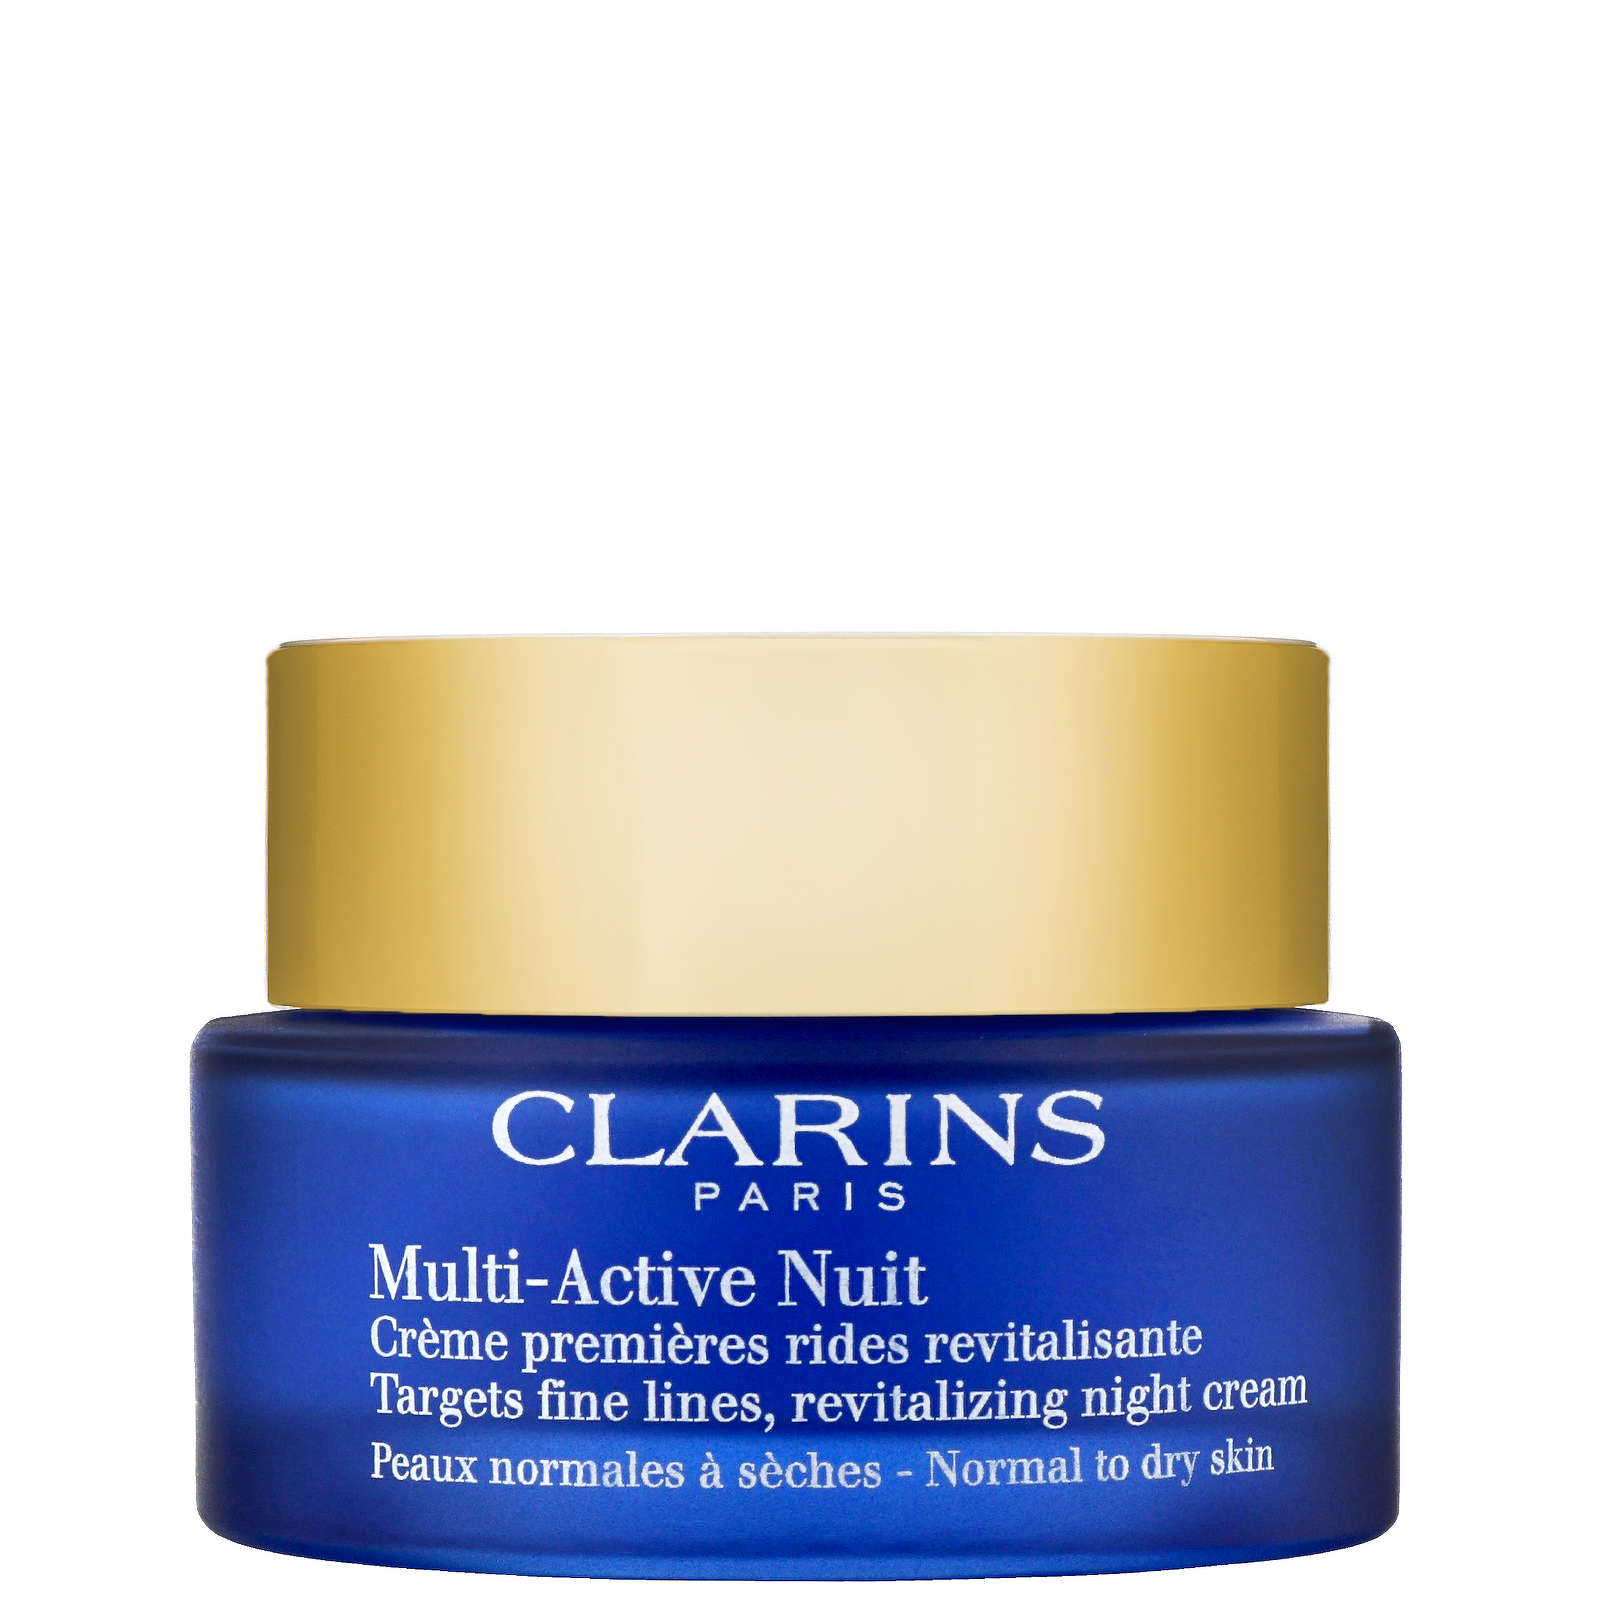 3 Pack - Clarins Multi-Active Night Cream Normal to Dry Skin 1.6 oz Jason All Natural Quick Clean Make-Up Remover Pads - 75 Ea, 2 Pack